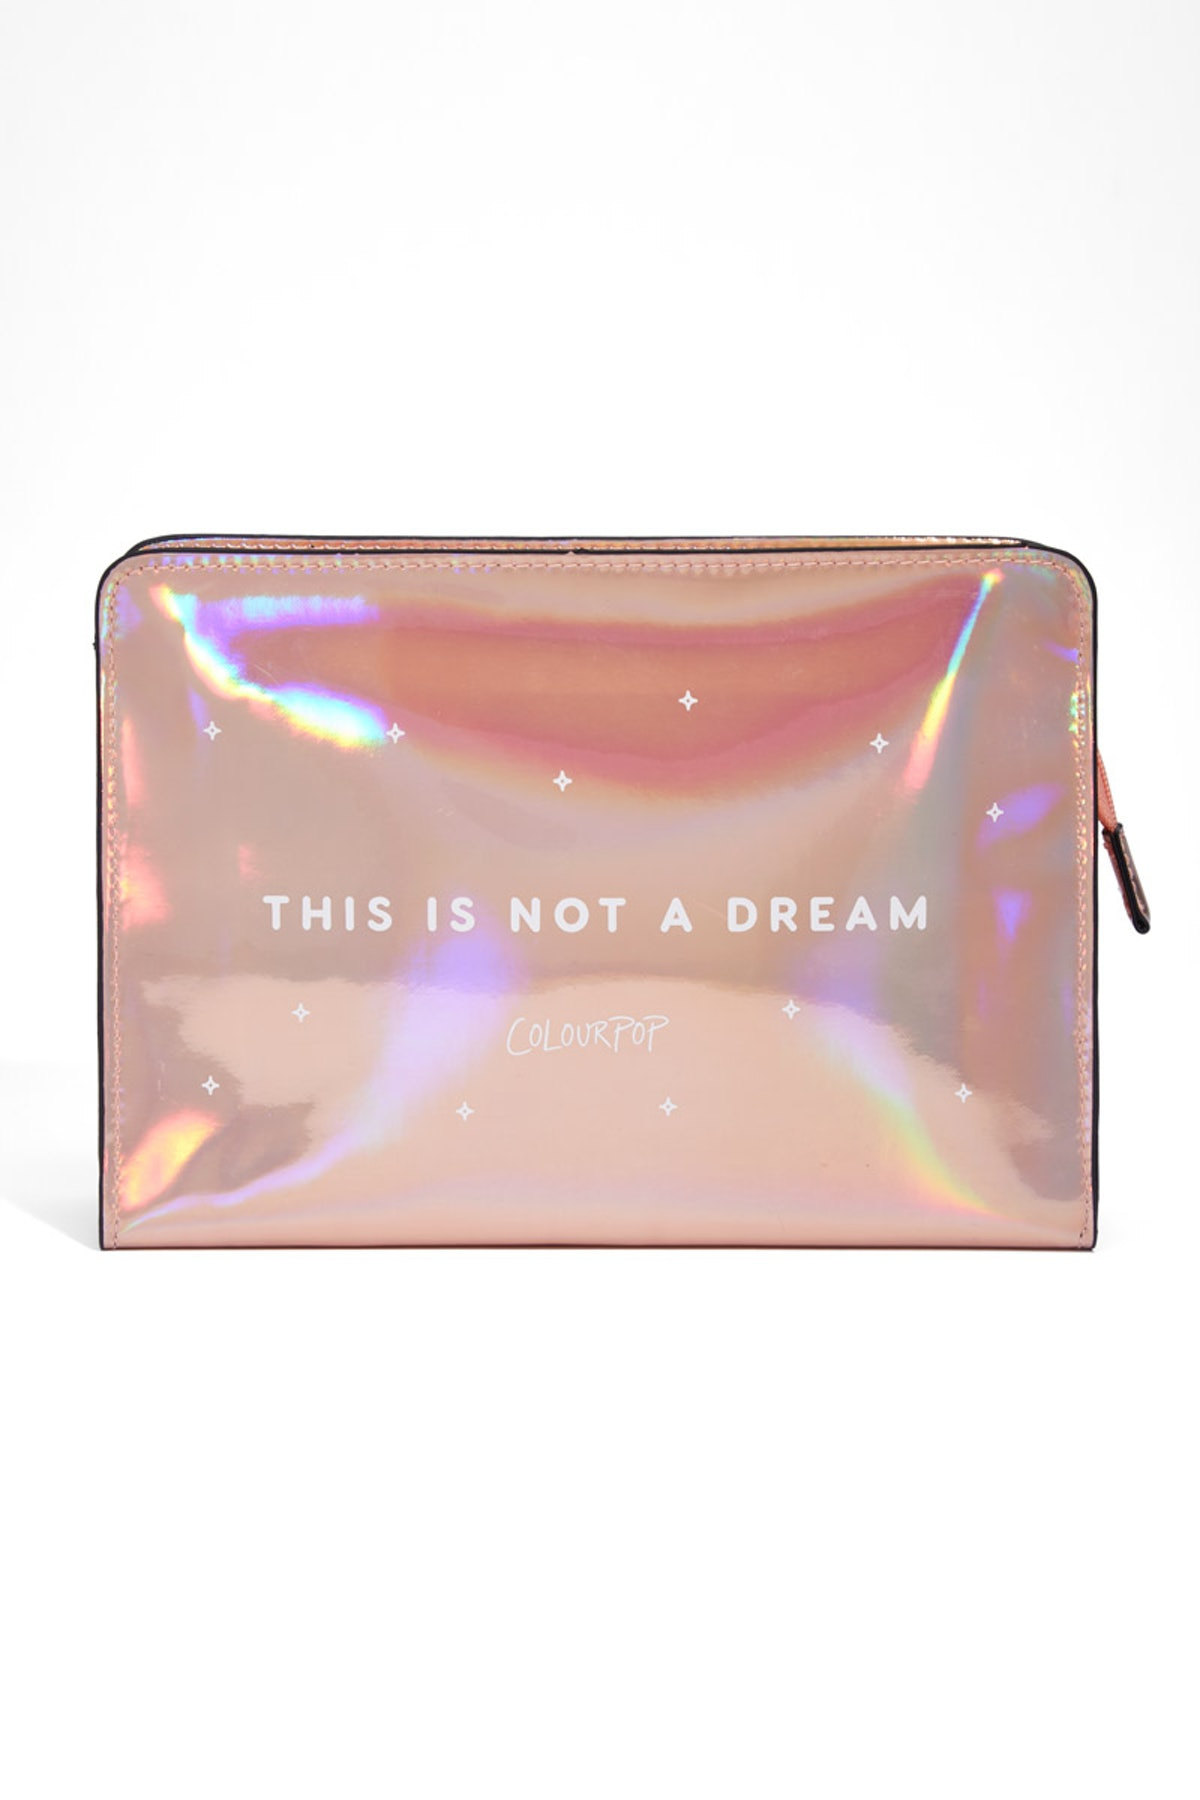 This Is Not A Dream Makeup Bag